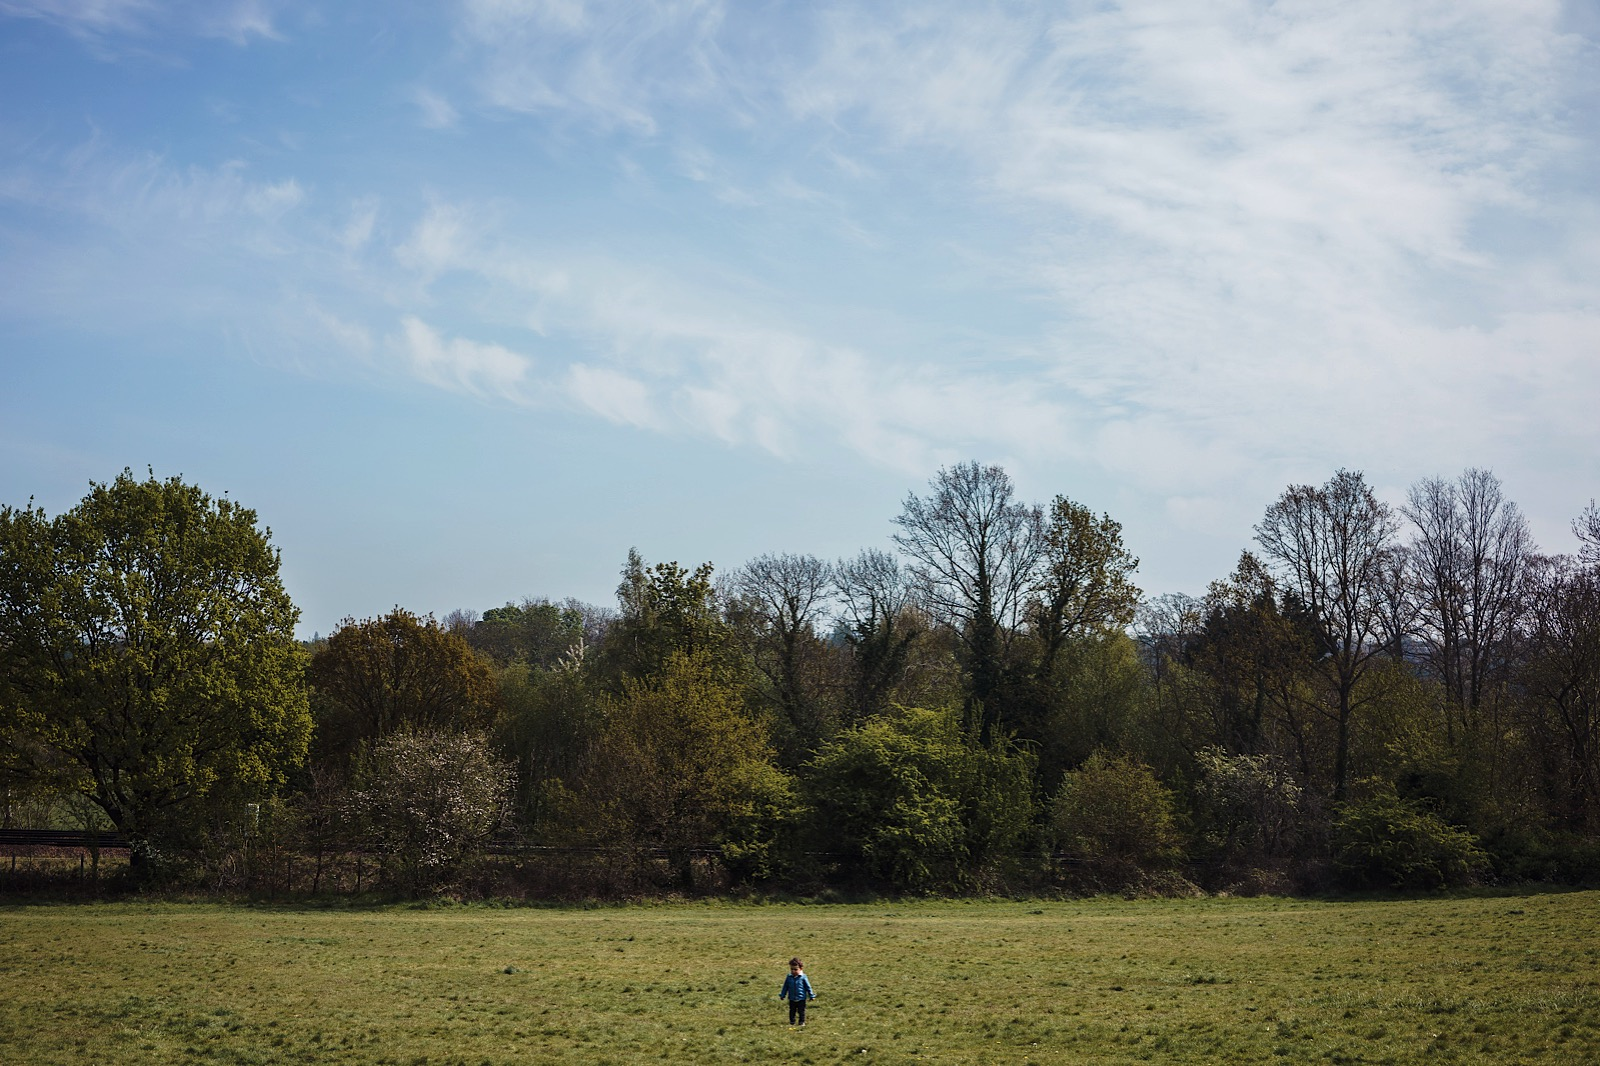 image of little boy stood in empty field during covid-19 pandemic